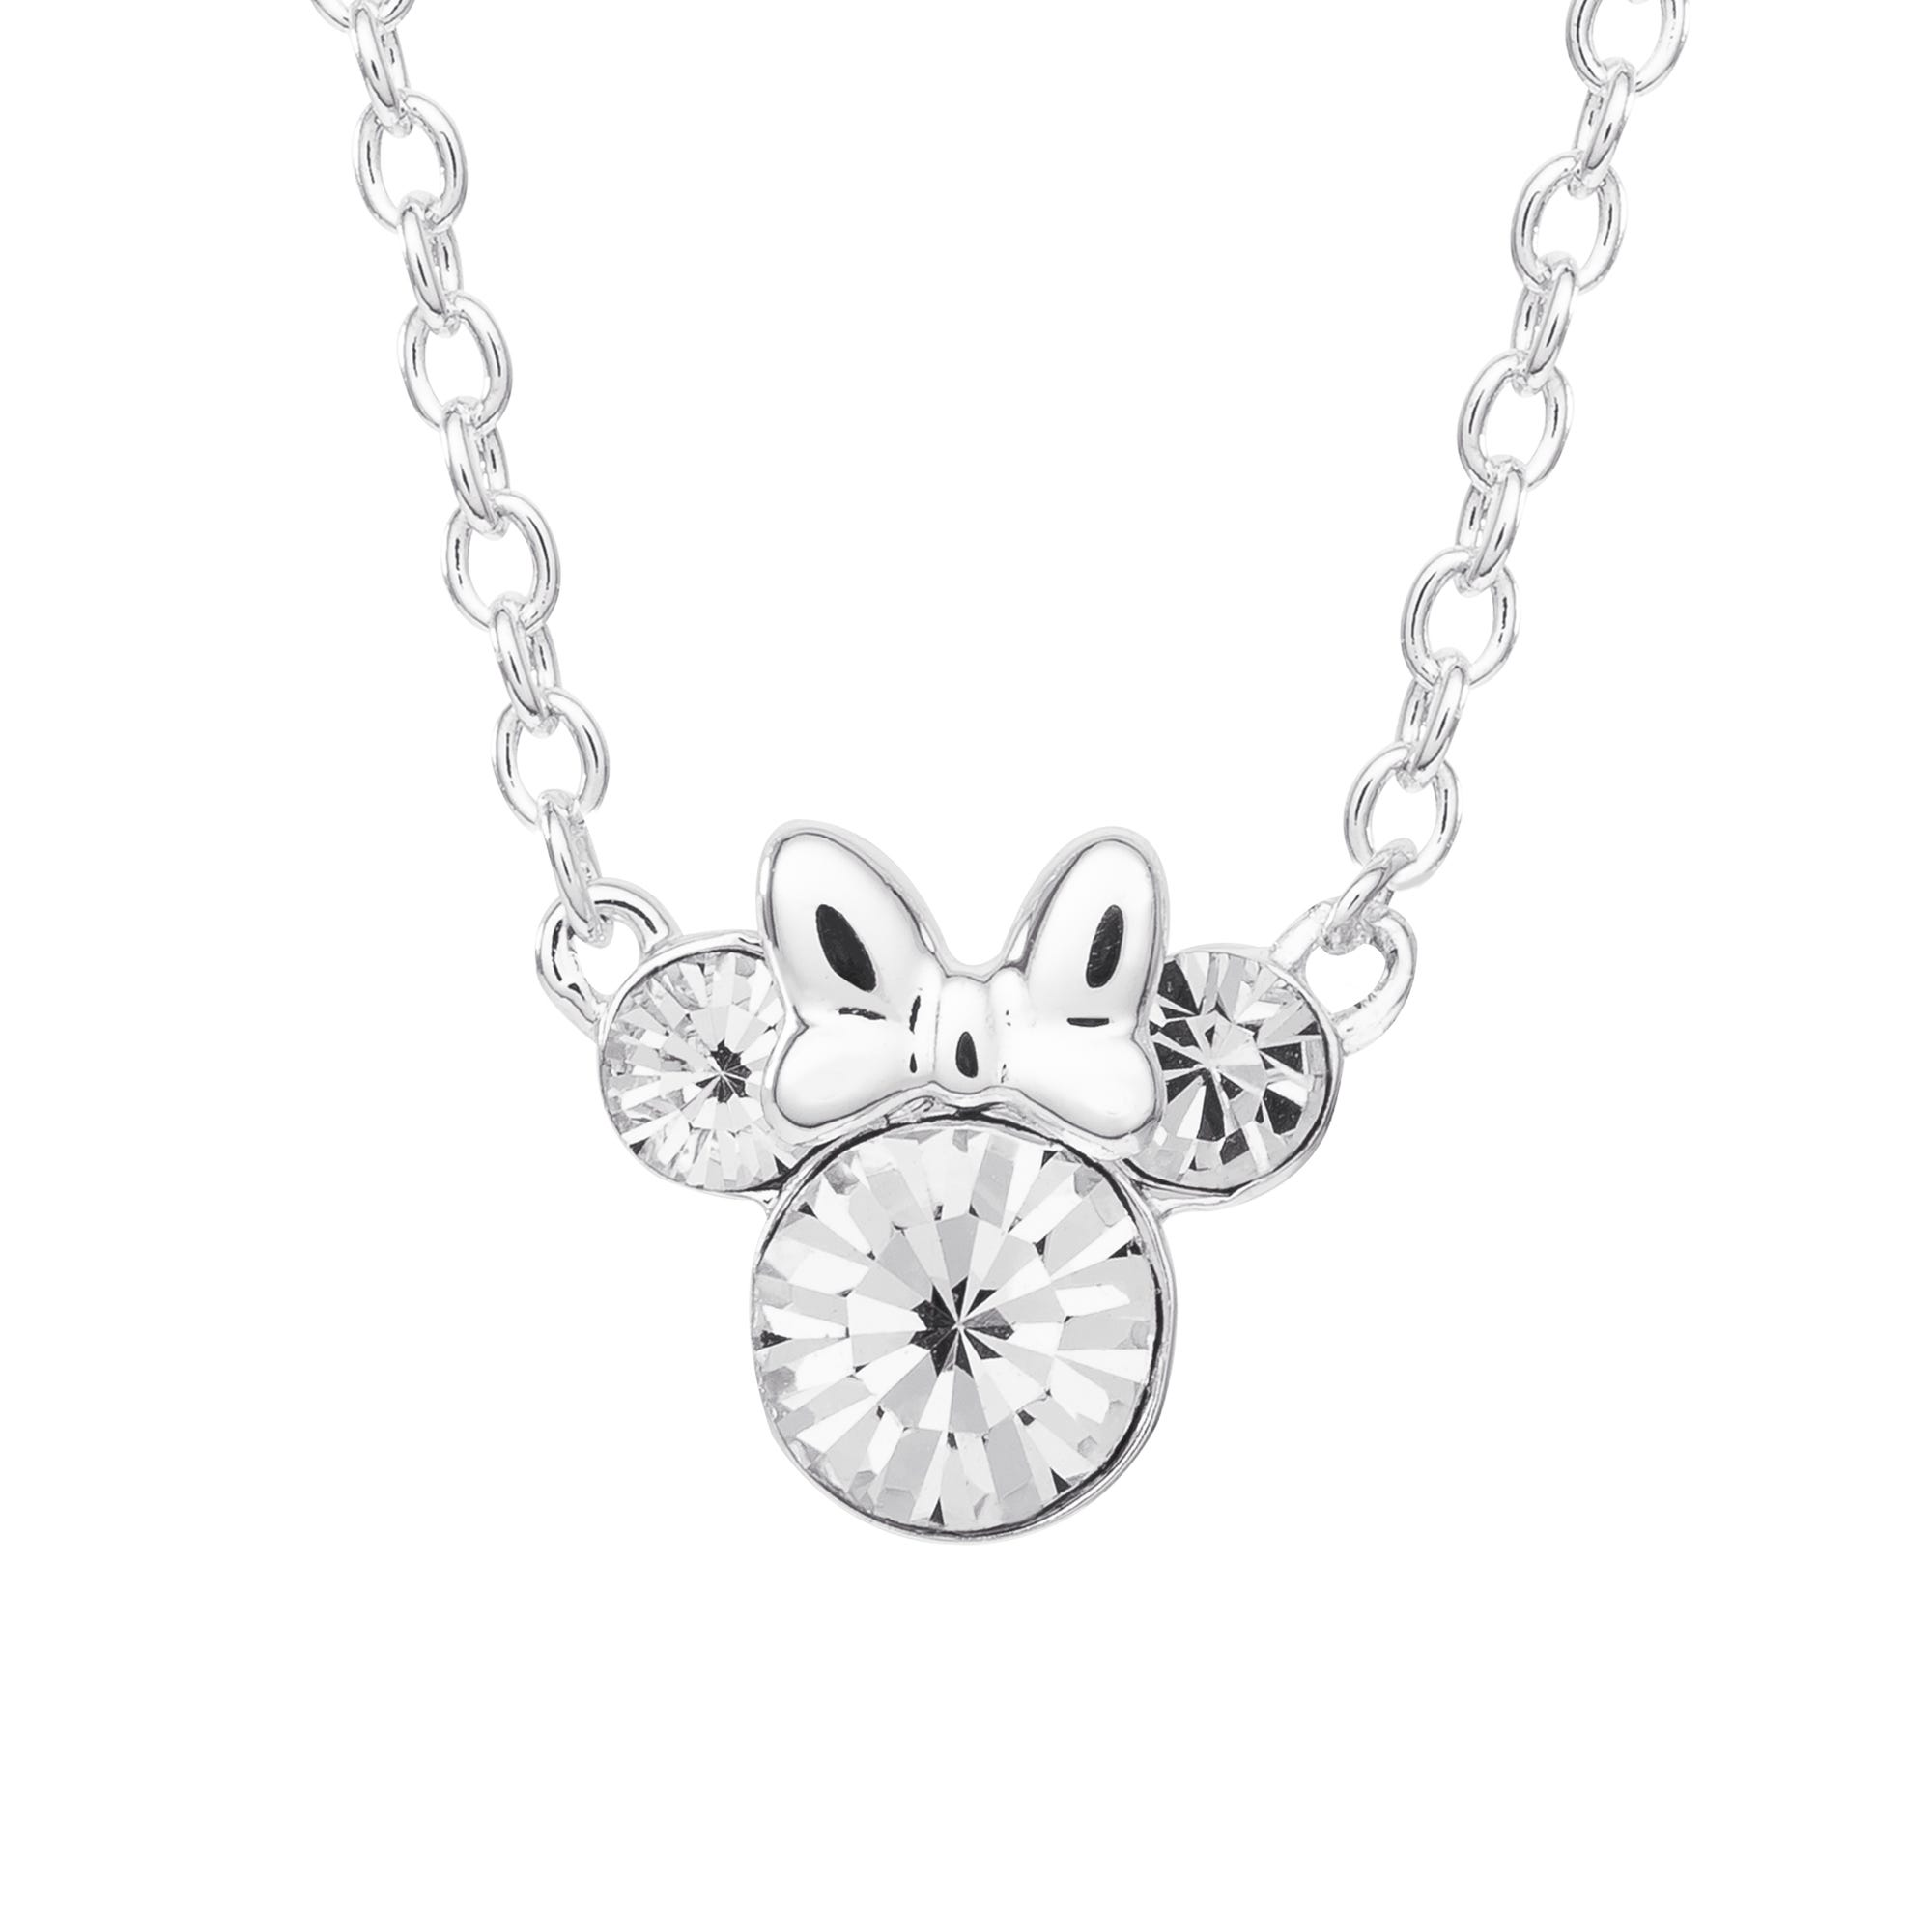 DISNEY© Minnie Mouse Crystal Necklace in Sterling Silver